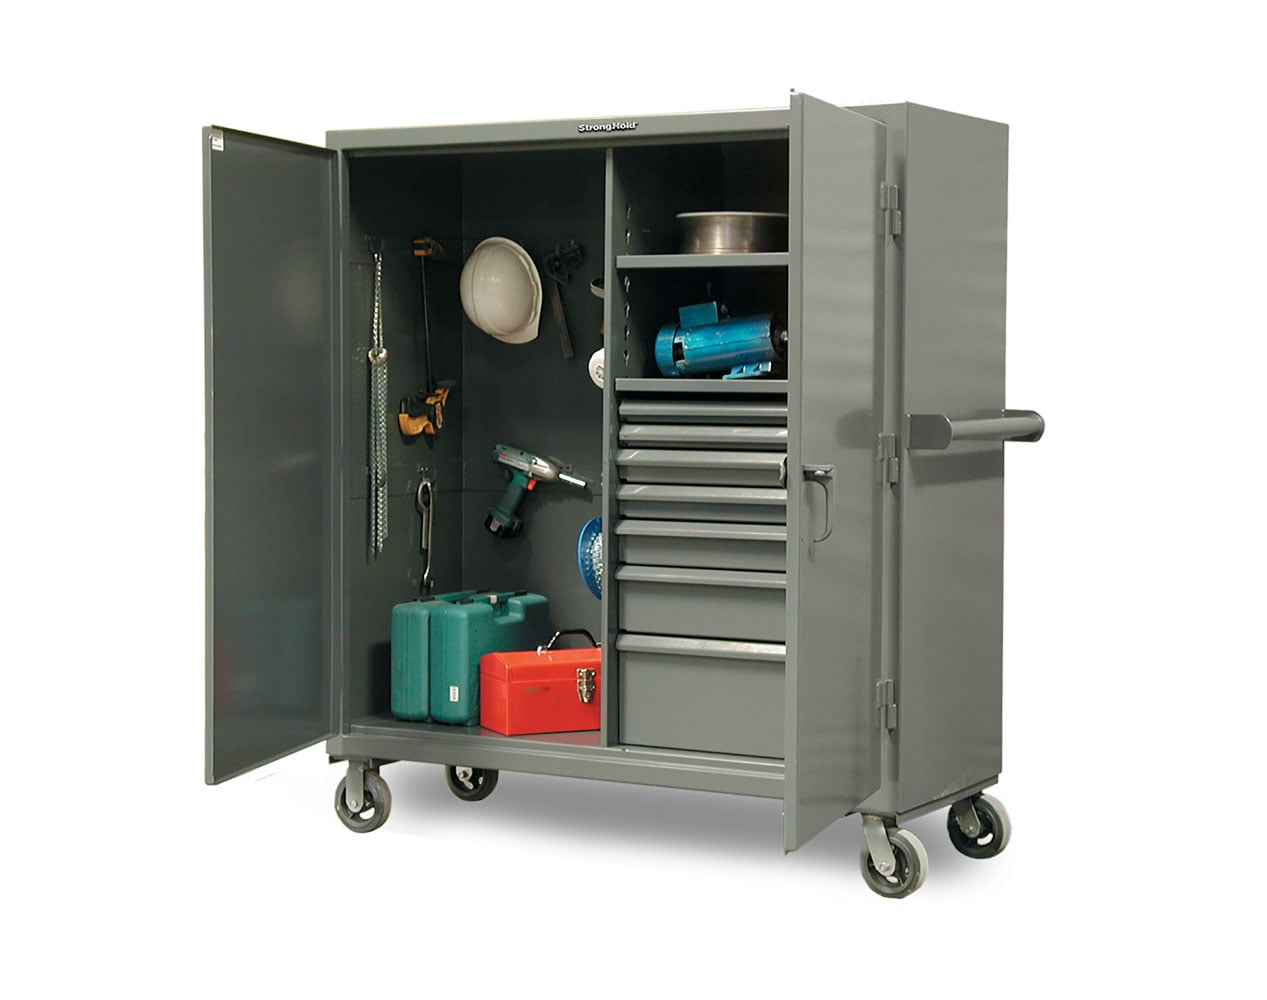 Extreme Duty 12 GA Mobile Jobsite Cabinet with 7 Half-Width Drawers, 2 Shelves – 48 in. W x 24 in. D x 68 in. H